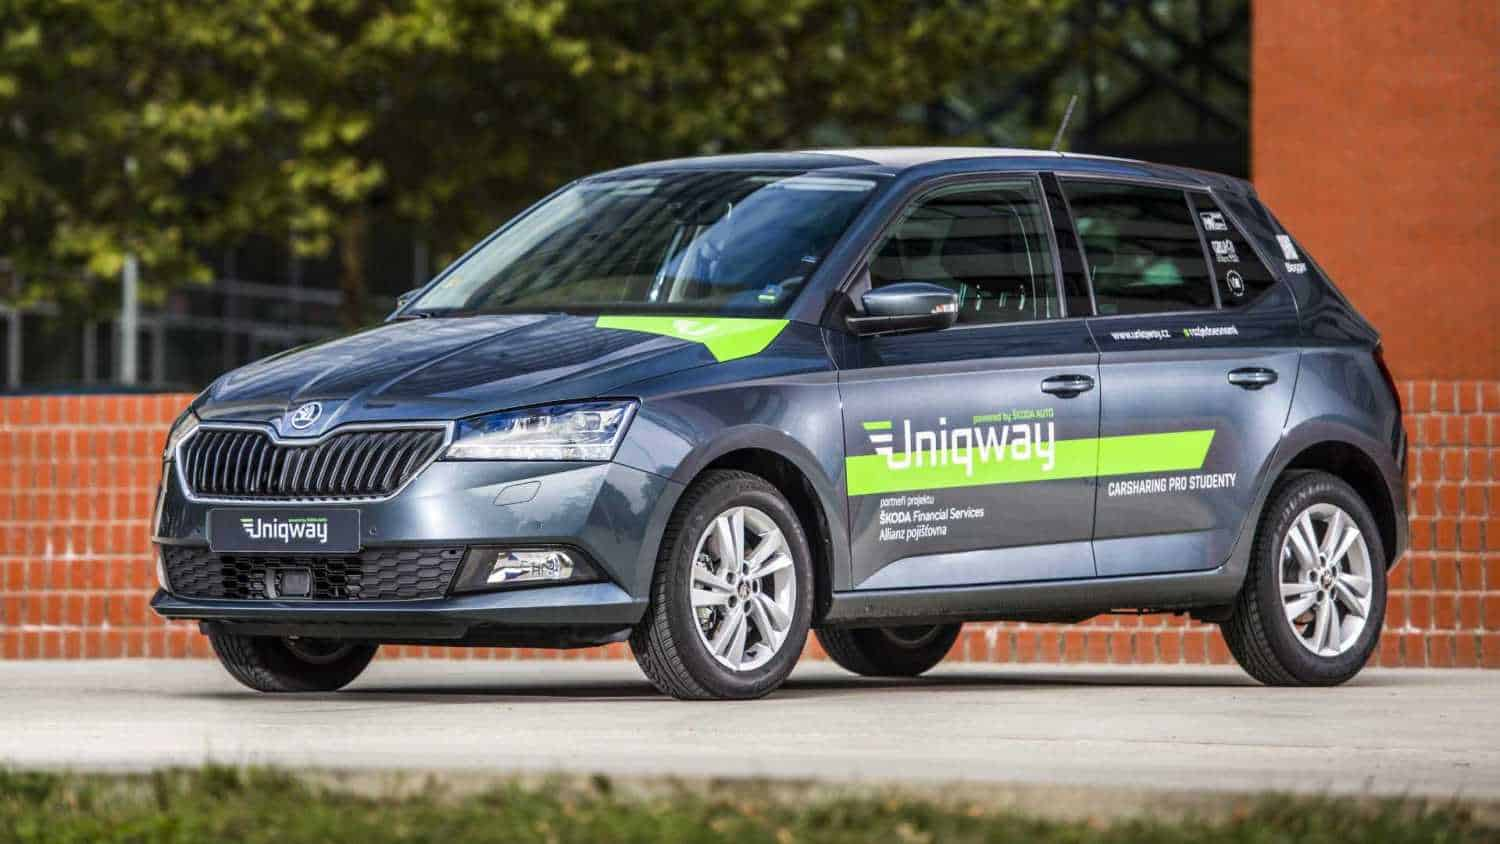 Skoda Carsharing Service Uniqway Vehicle Is Parked Against Brick Wall